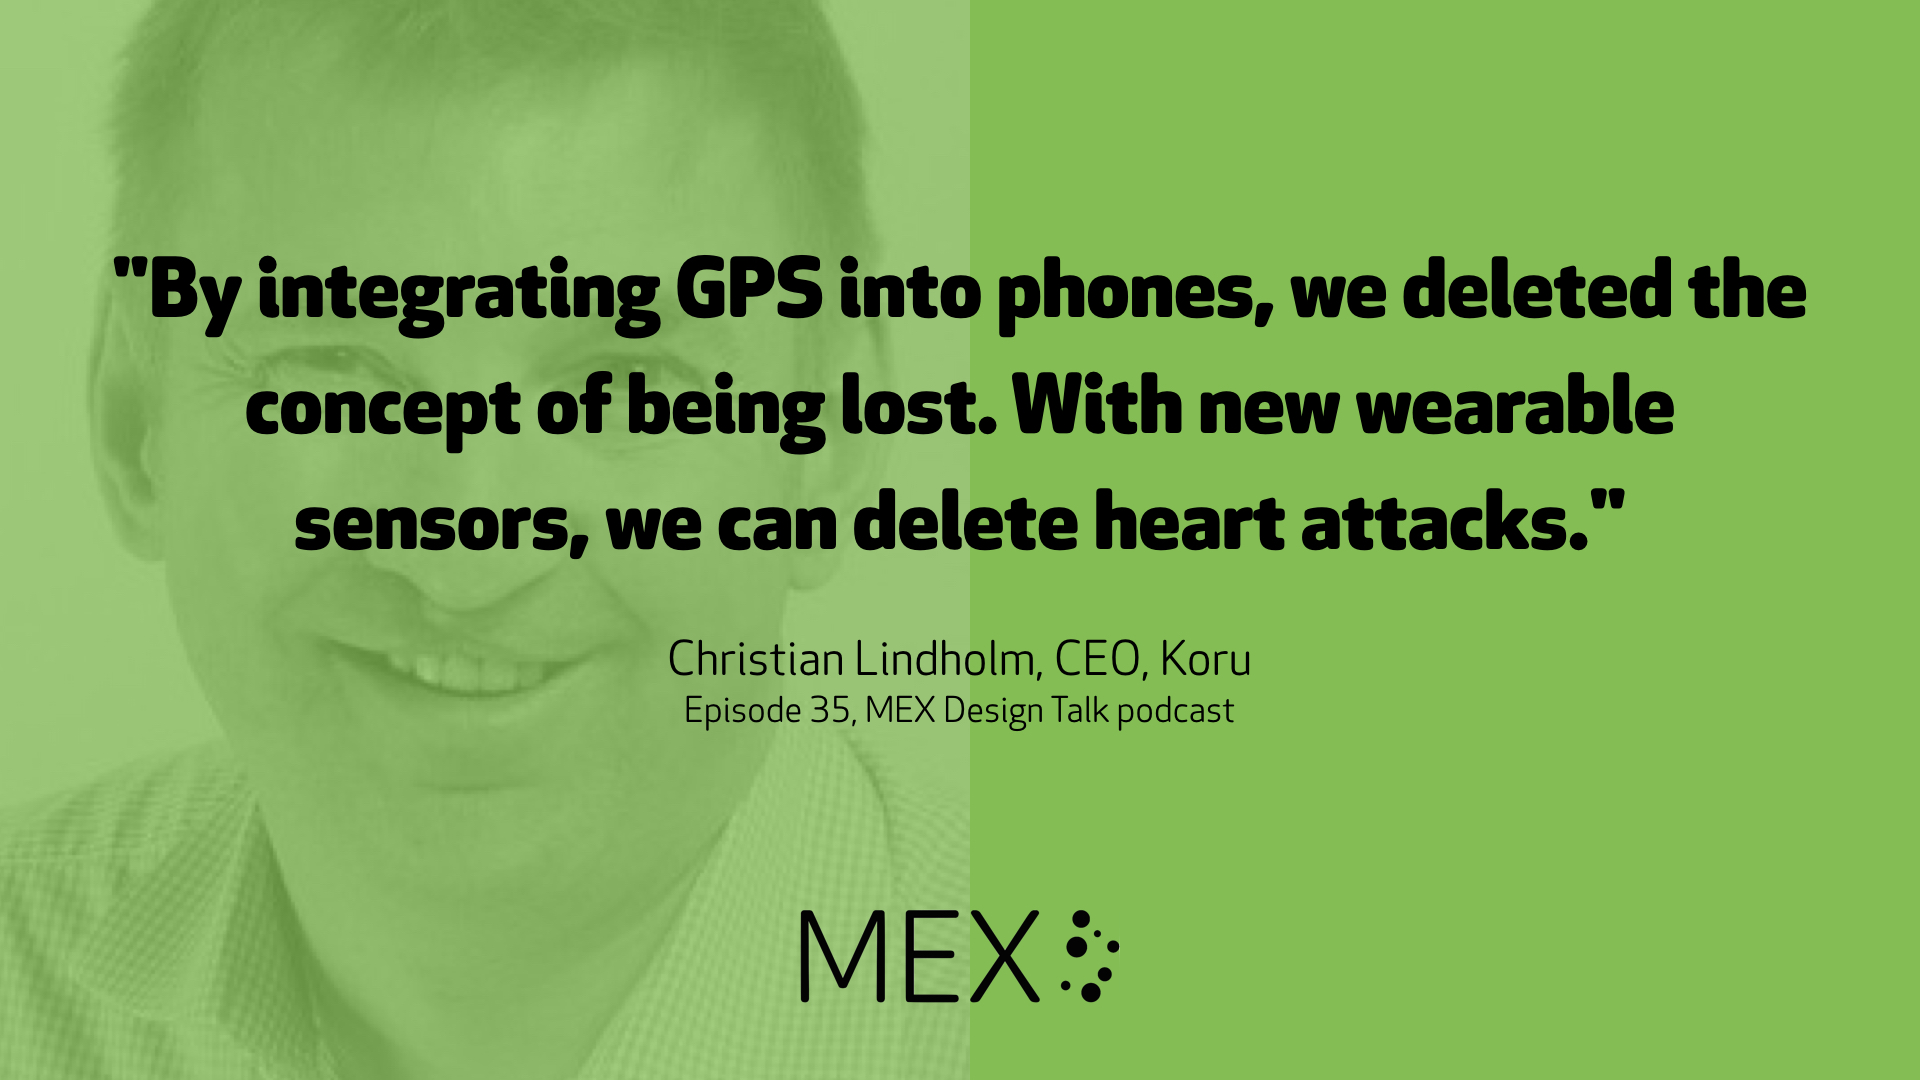 """By integrating GPS into phones, we deleted the concept of being lost. With new wearable sensors, we can delete heart attacks."" Christian Lindholm, CEO, Koru Episode 35, MEX Design Talk podcast"